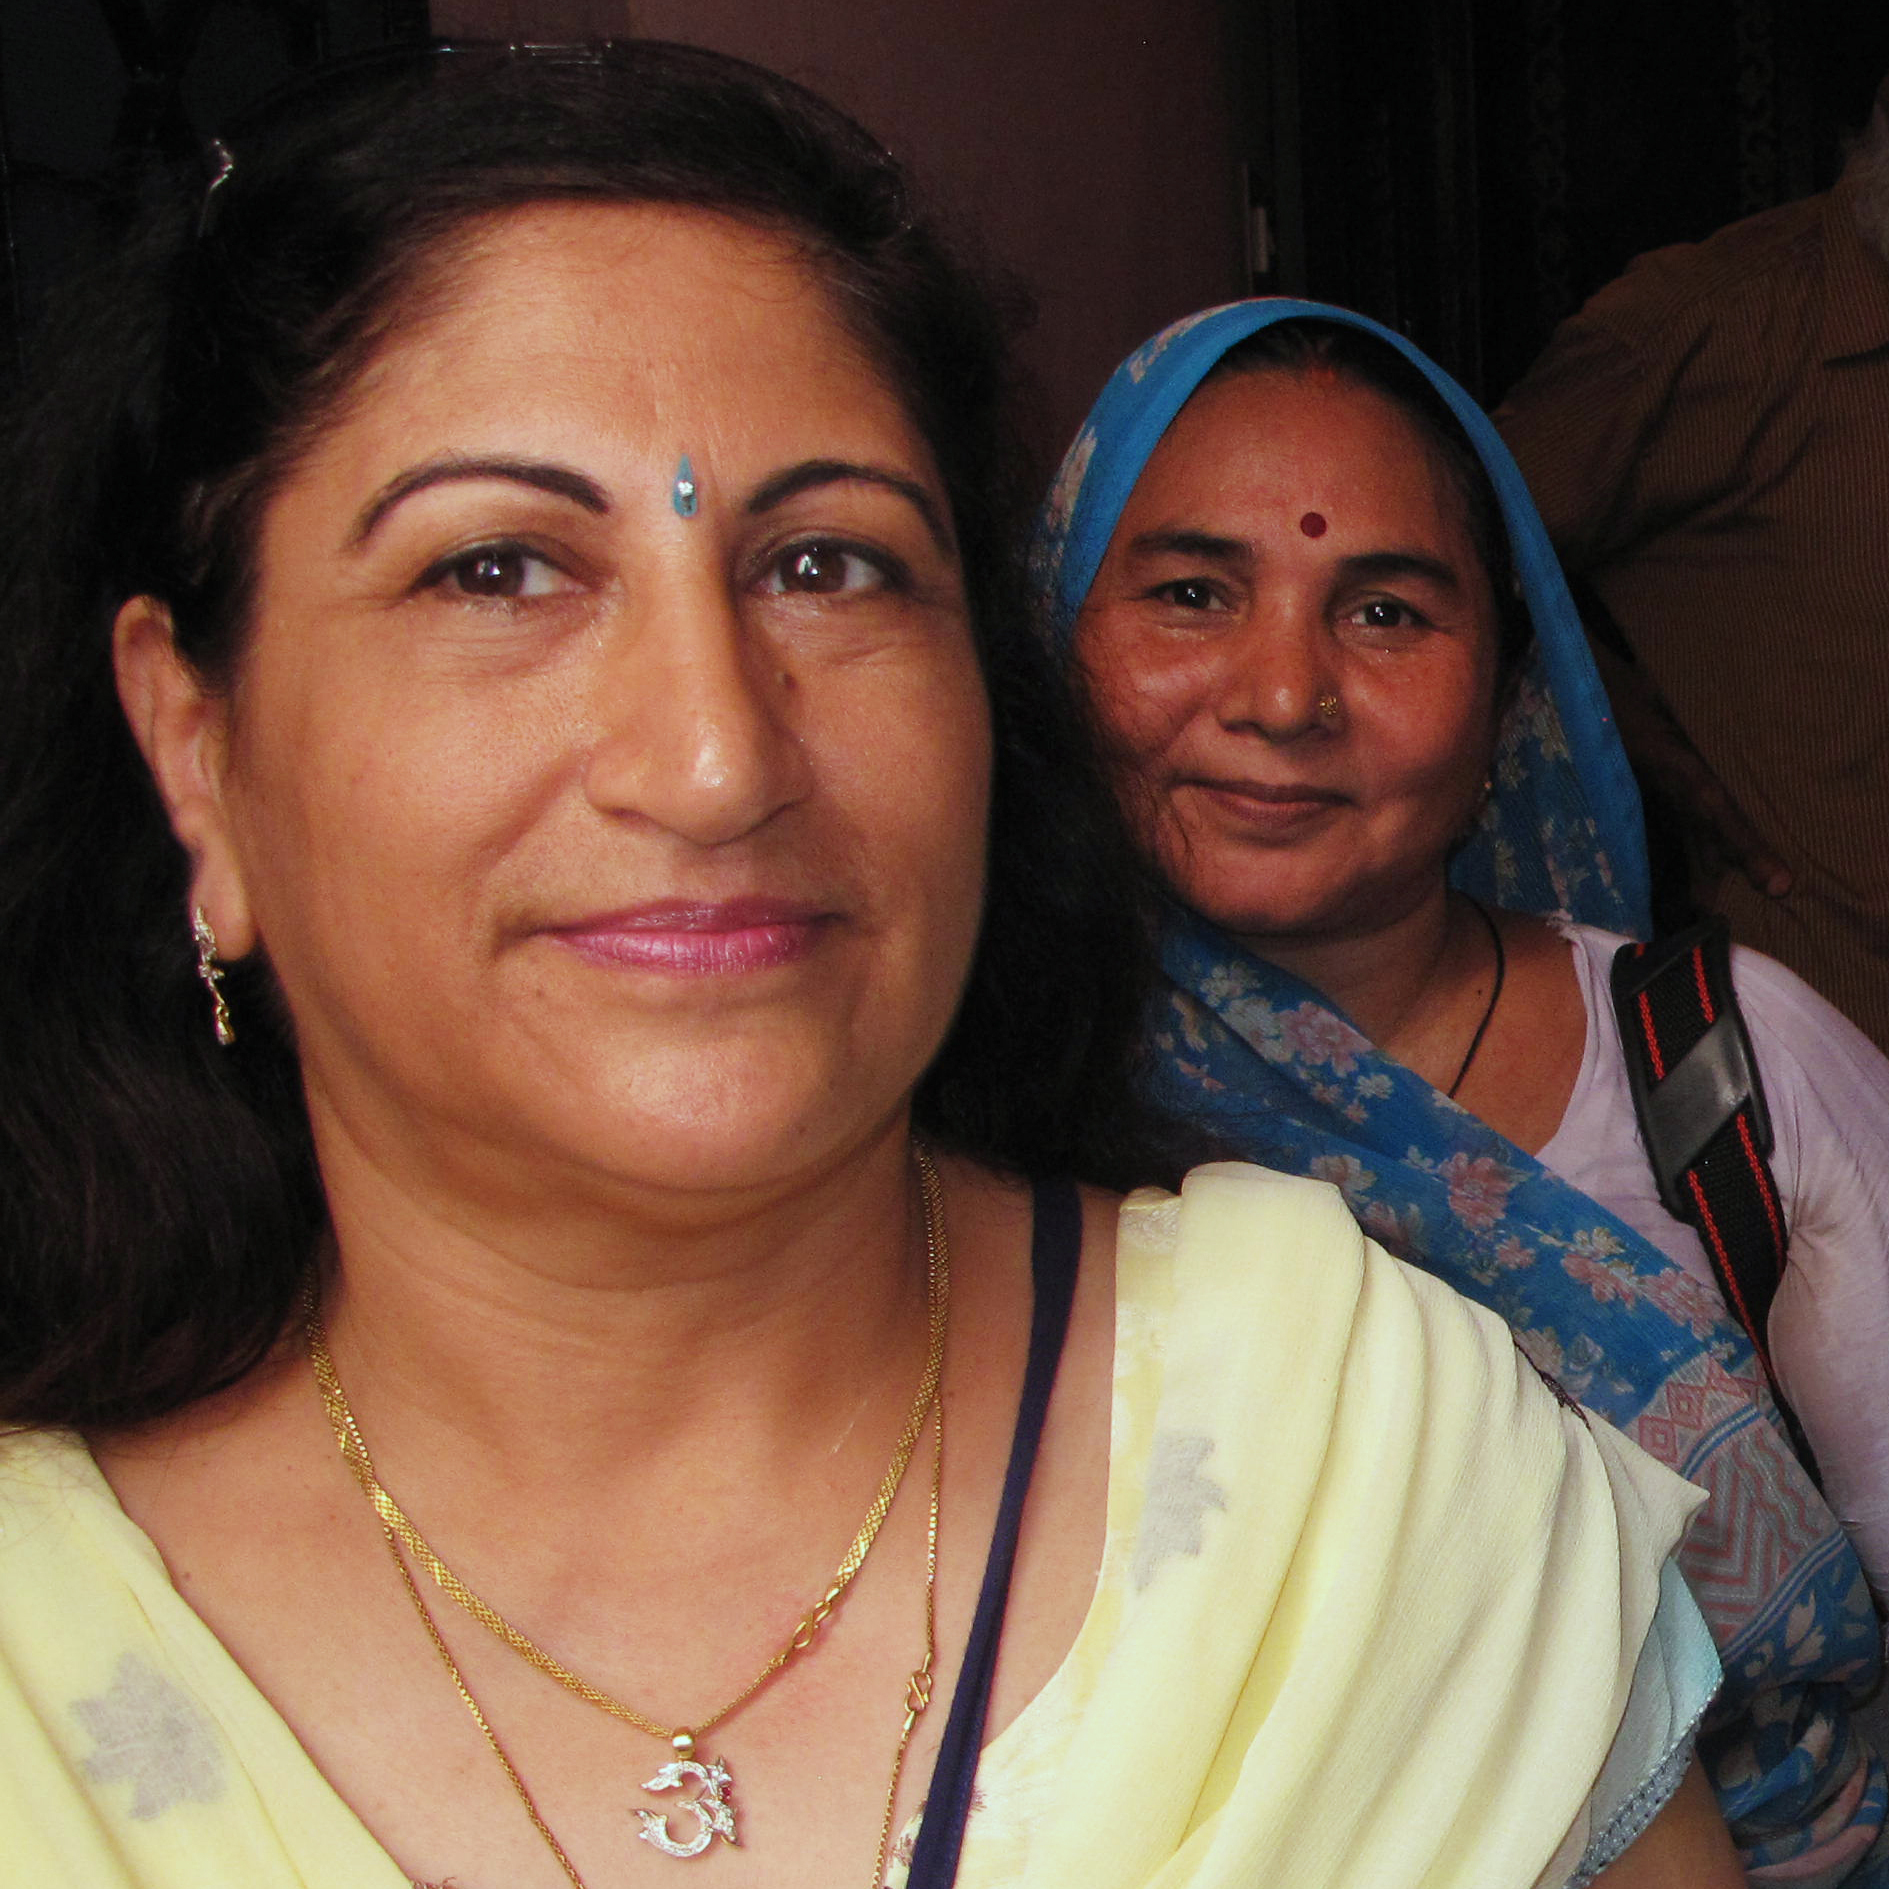 Dr. Kiran Kathuria (left) and veteran volunteer Santosh Sharma (front right) make the rounds with a team of vaccinators in Nehru Nagar, a middle-class area of Delhi. India's nationwide polio eradication program, begun in 1995, was modeled after Delhi's.